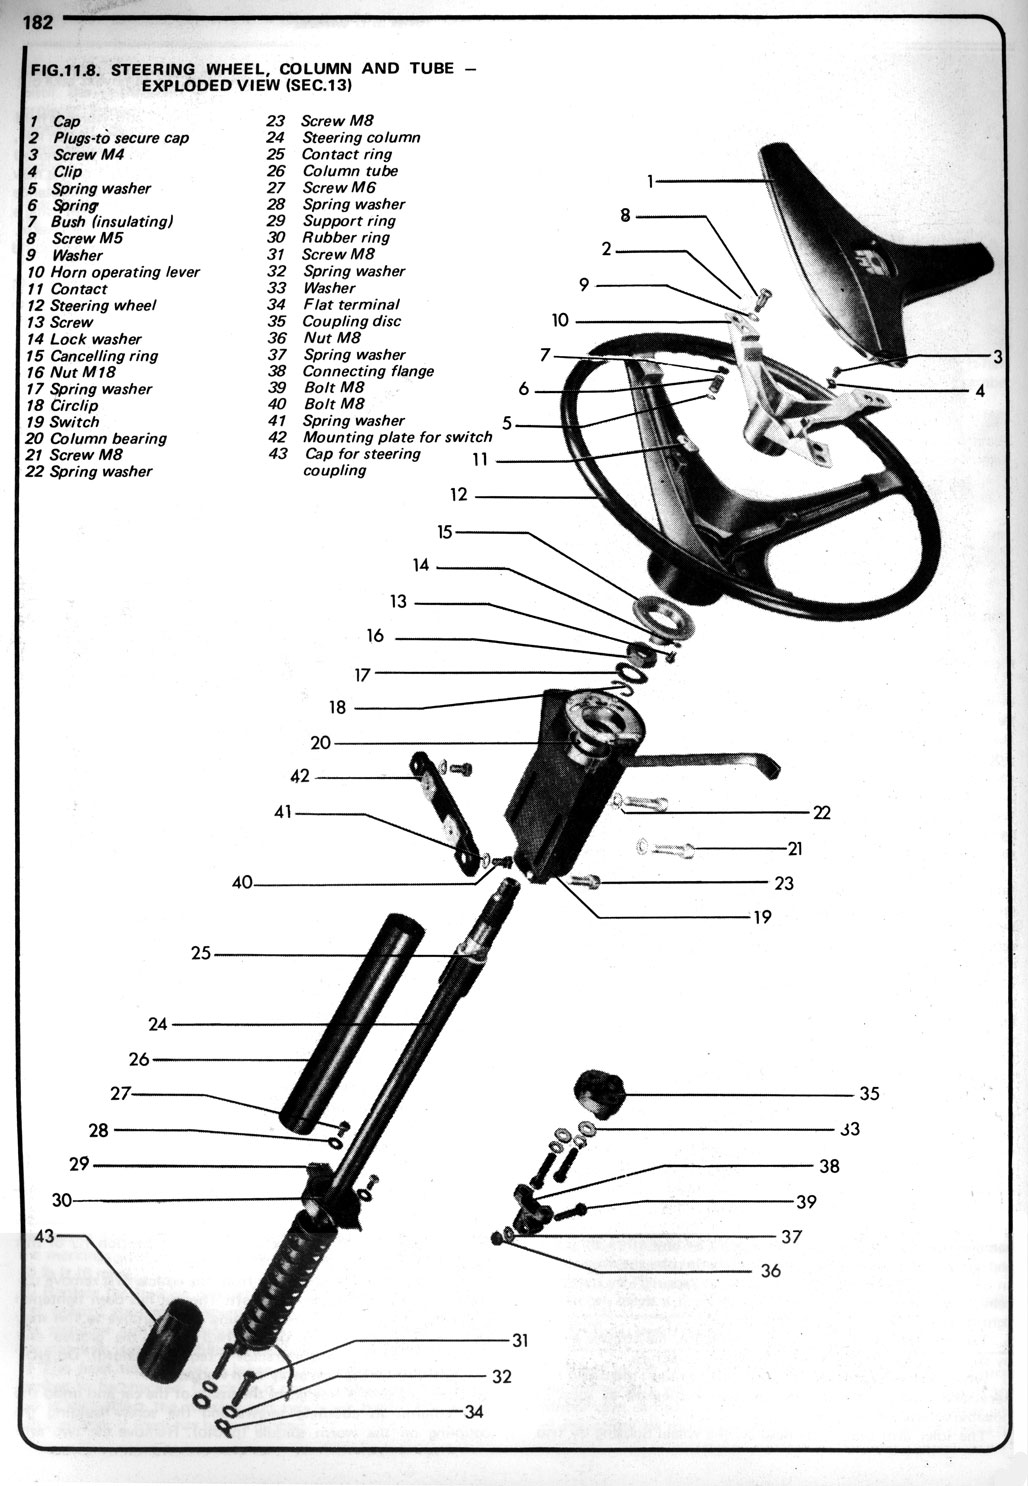 1972 Vw Steering Column Wiring Harness 38 Diagram Images Dodge Wheel 1 Thesamba Com 411 412 View Topic Type 4 Wheels